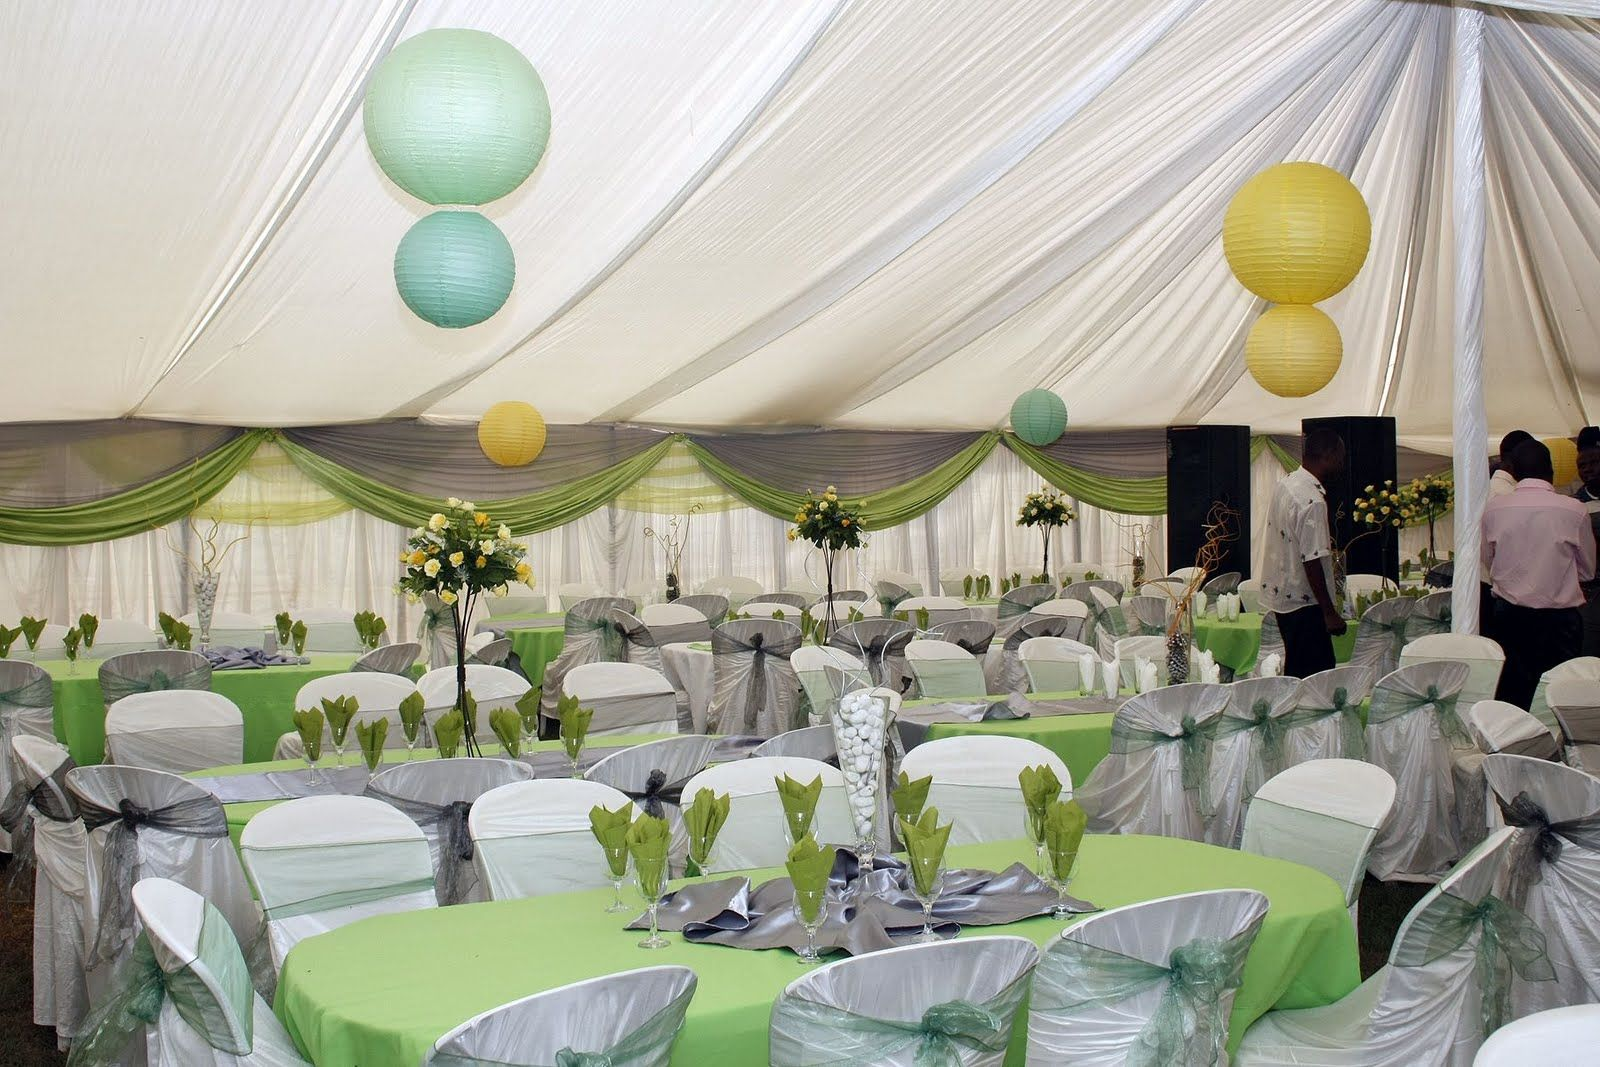 Garden wedding reception decoration ideas how to make for Home wedding ideas